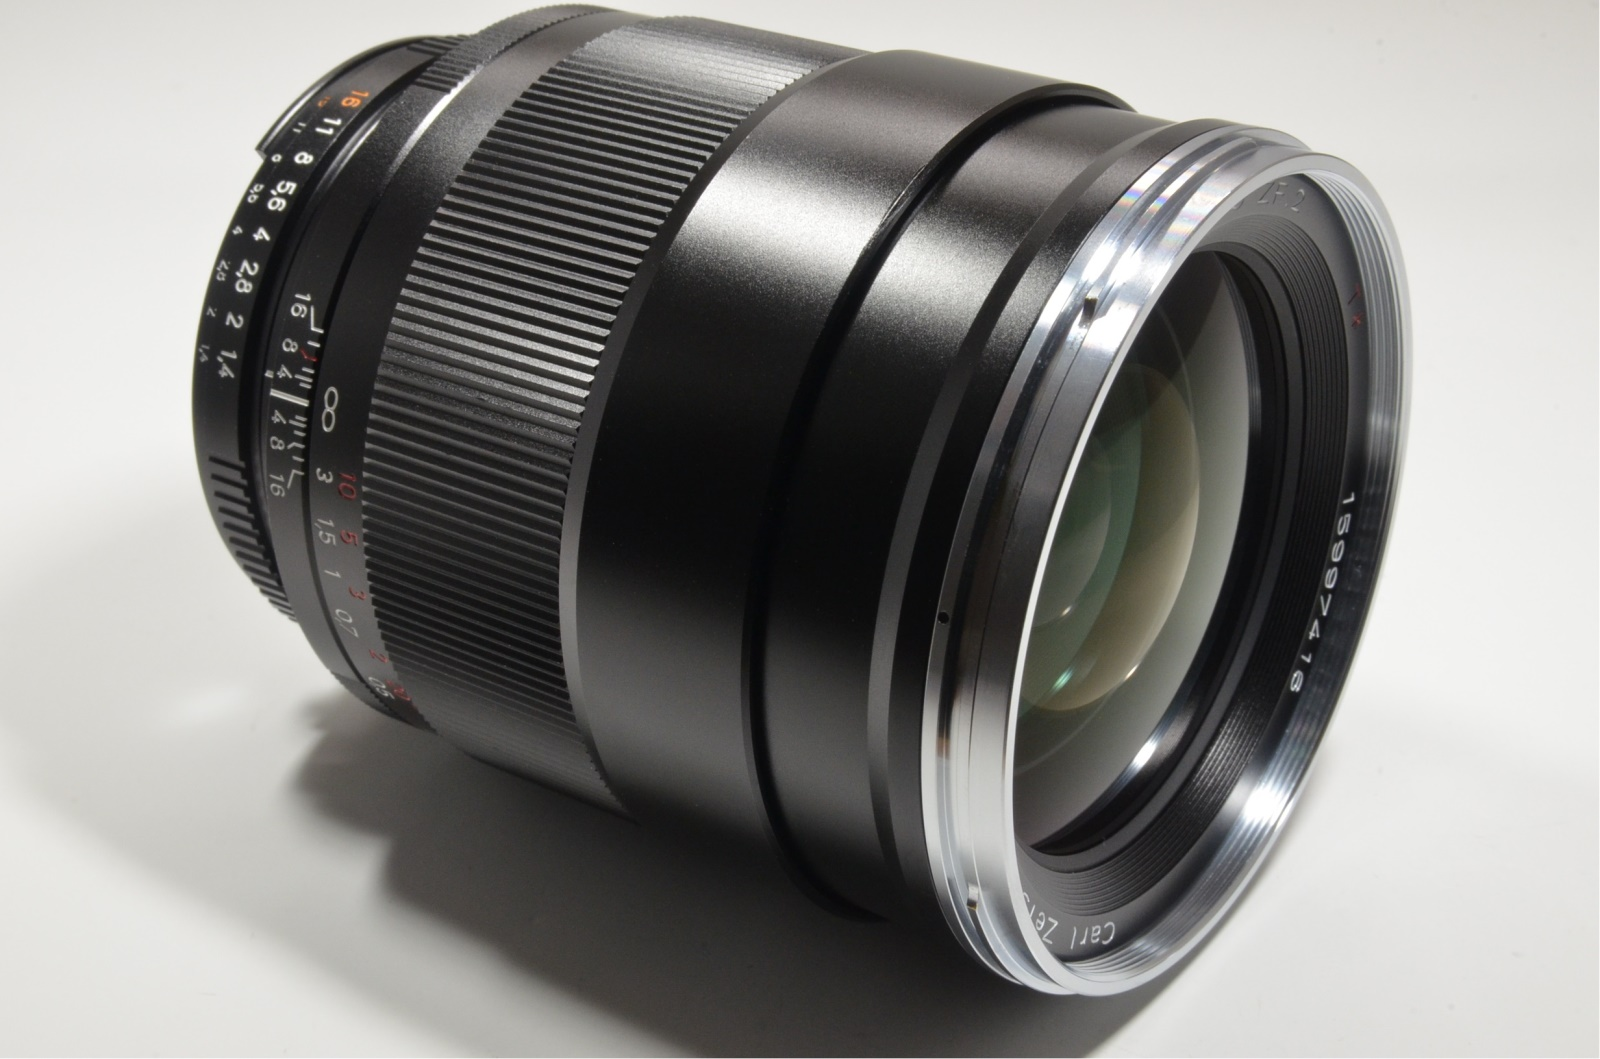 carl zeiss distagon t* 35mm f1.4 zf.2 for nikon with lens filter